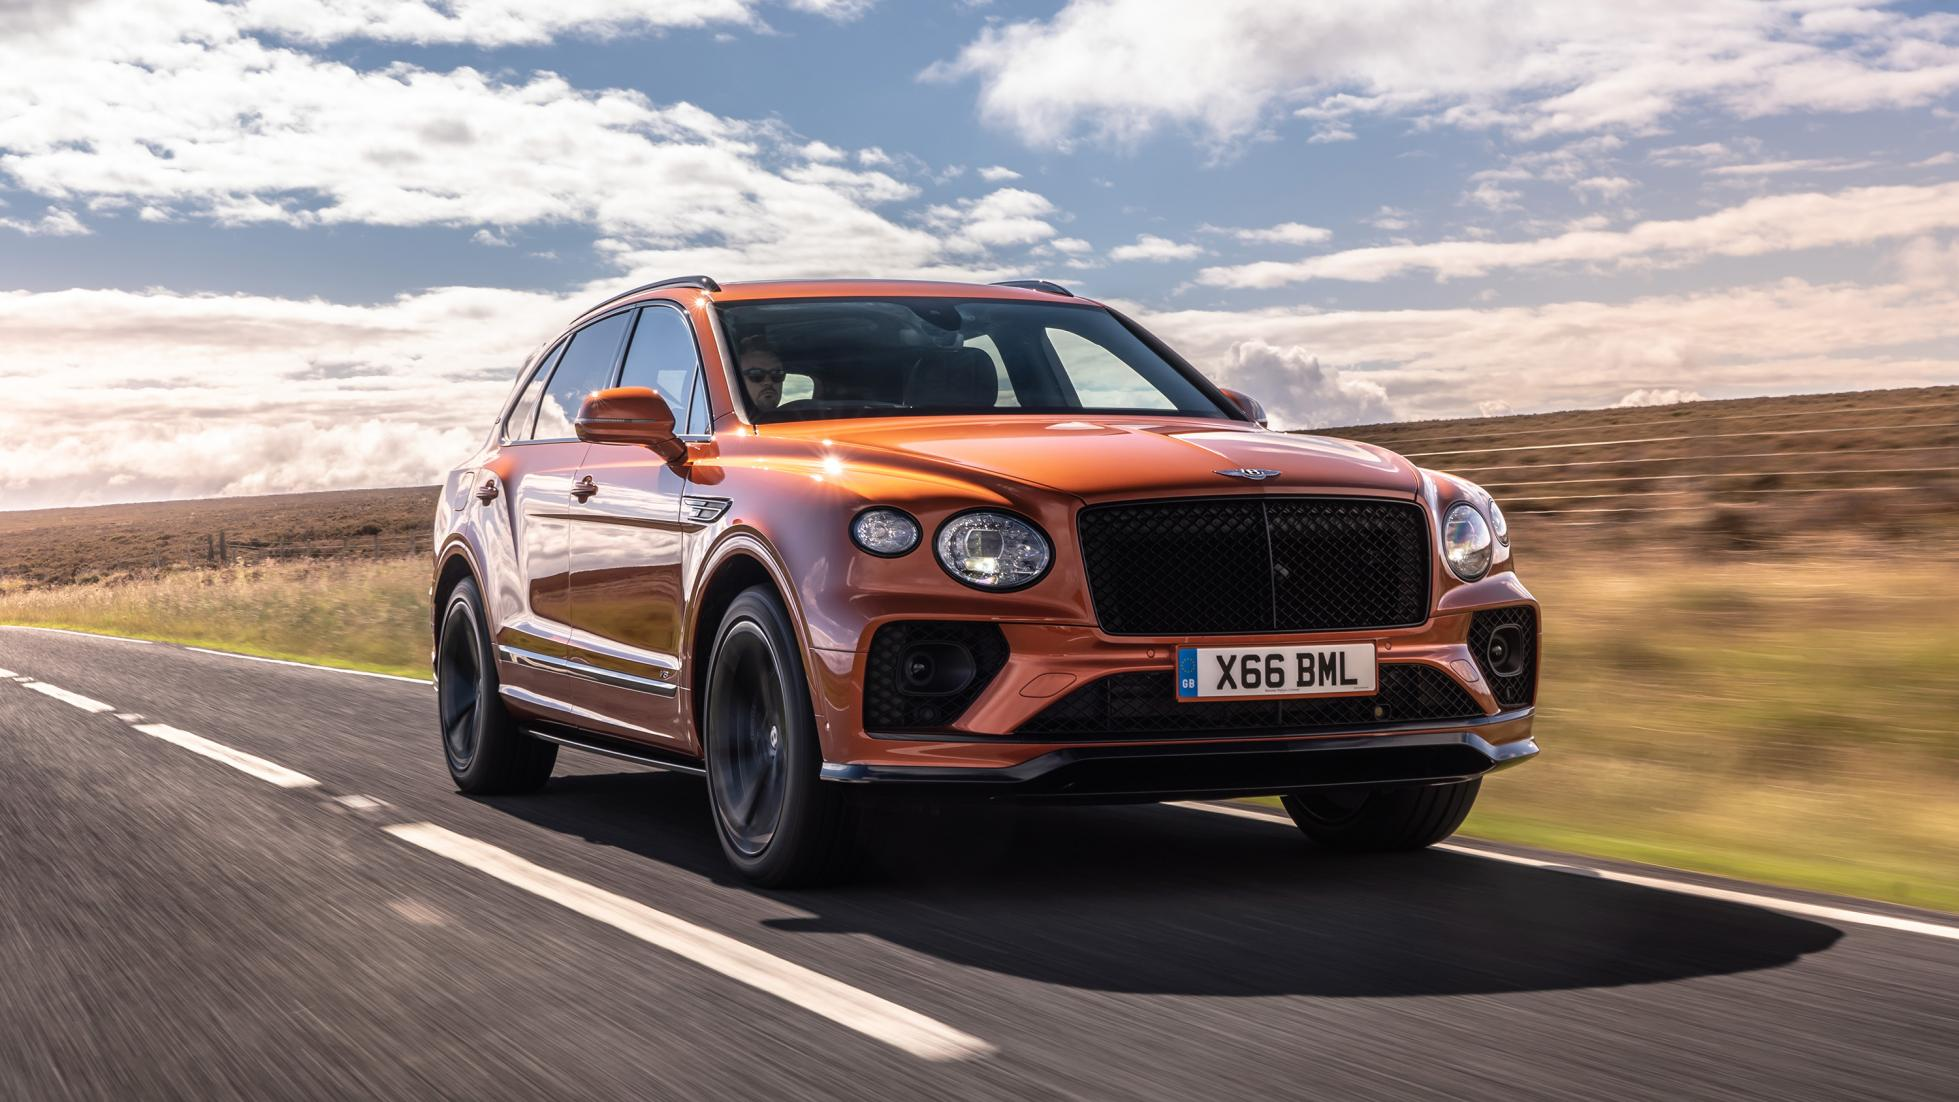 2020 Bentley Bentayga Review Price Photos Features Specs